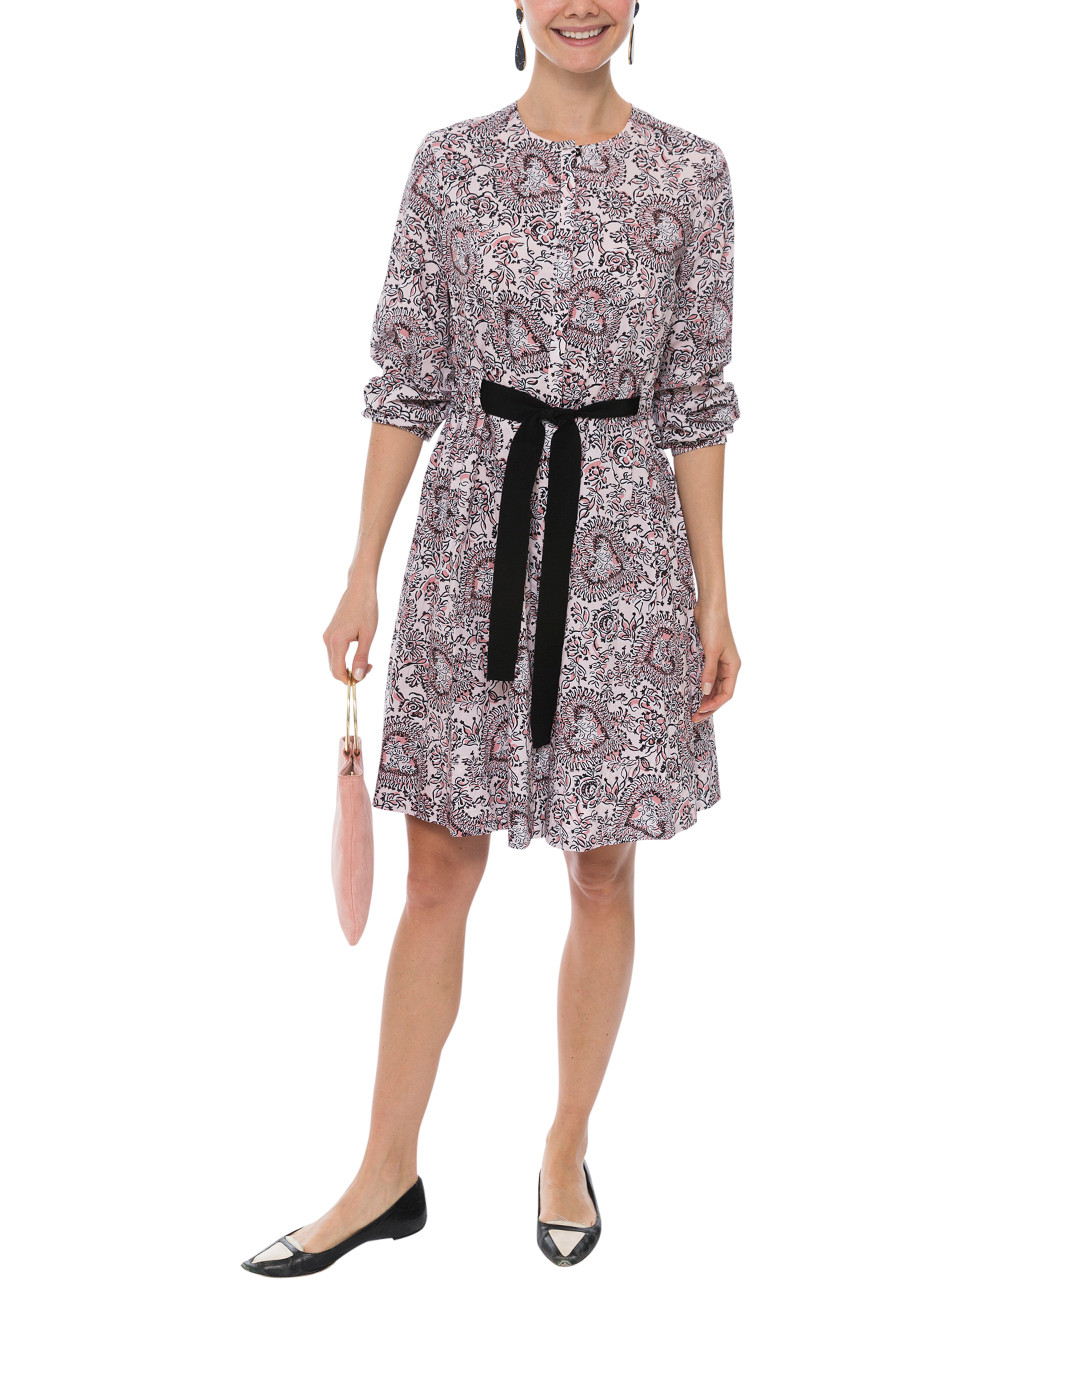 169214e4795 Pink and Black Floral Print Dress